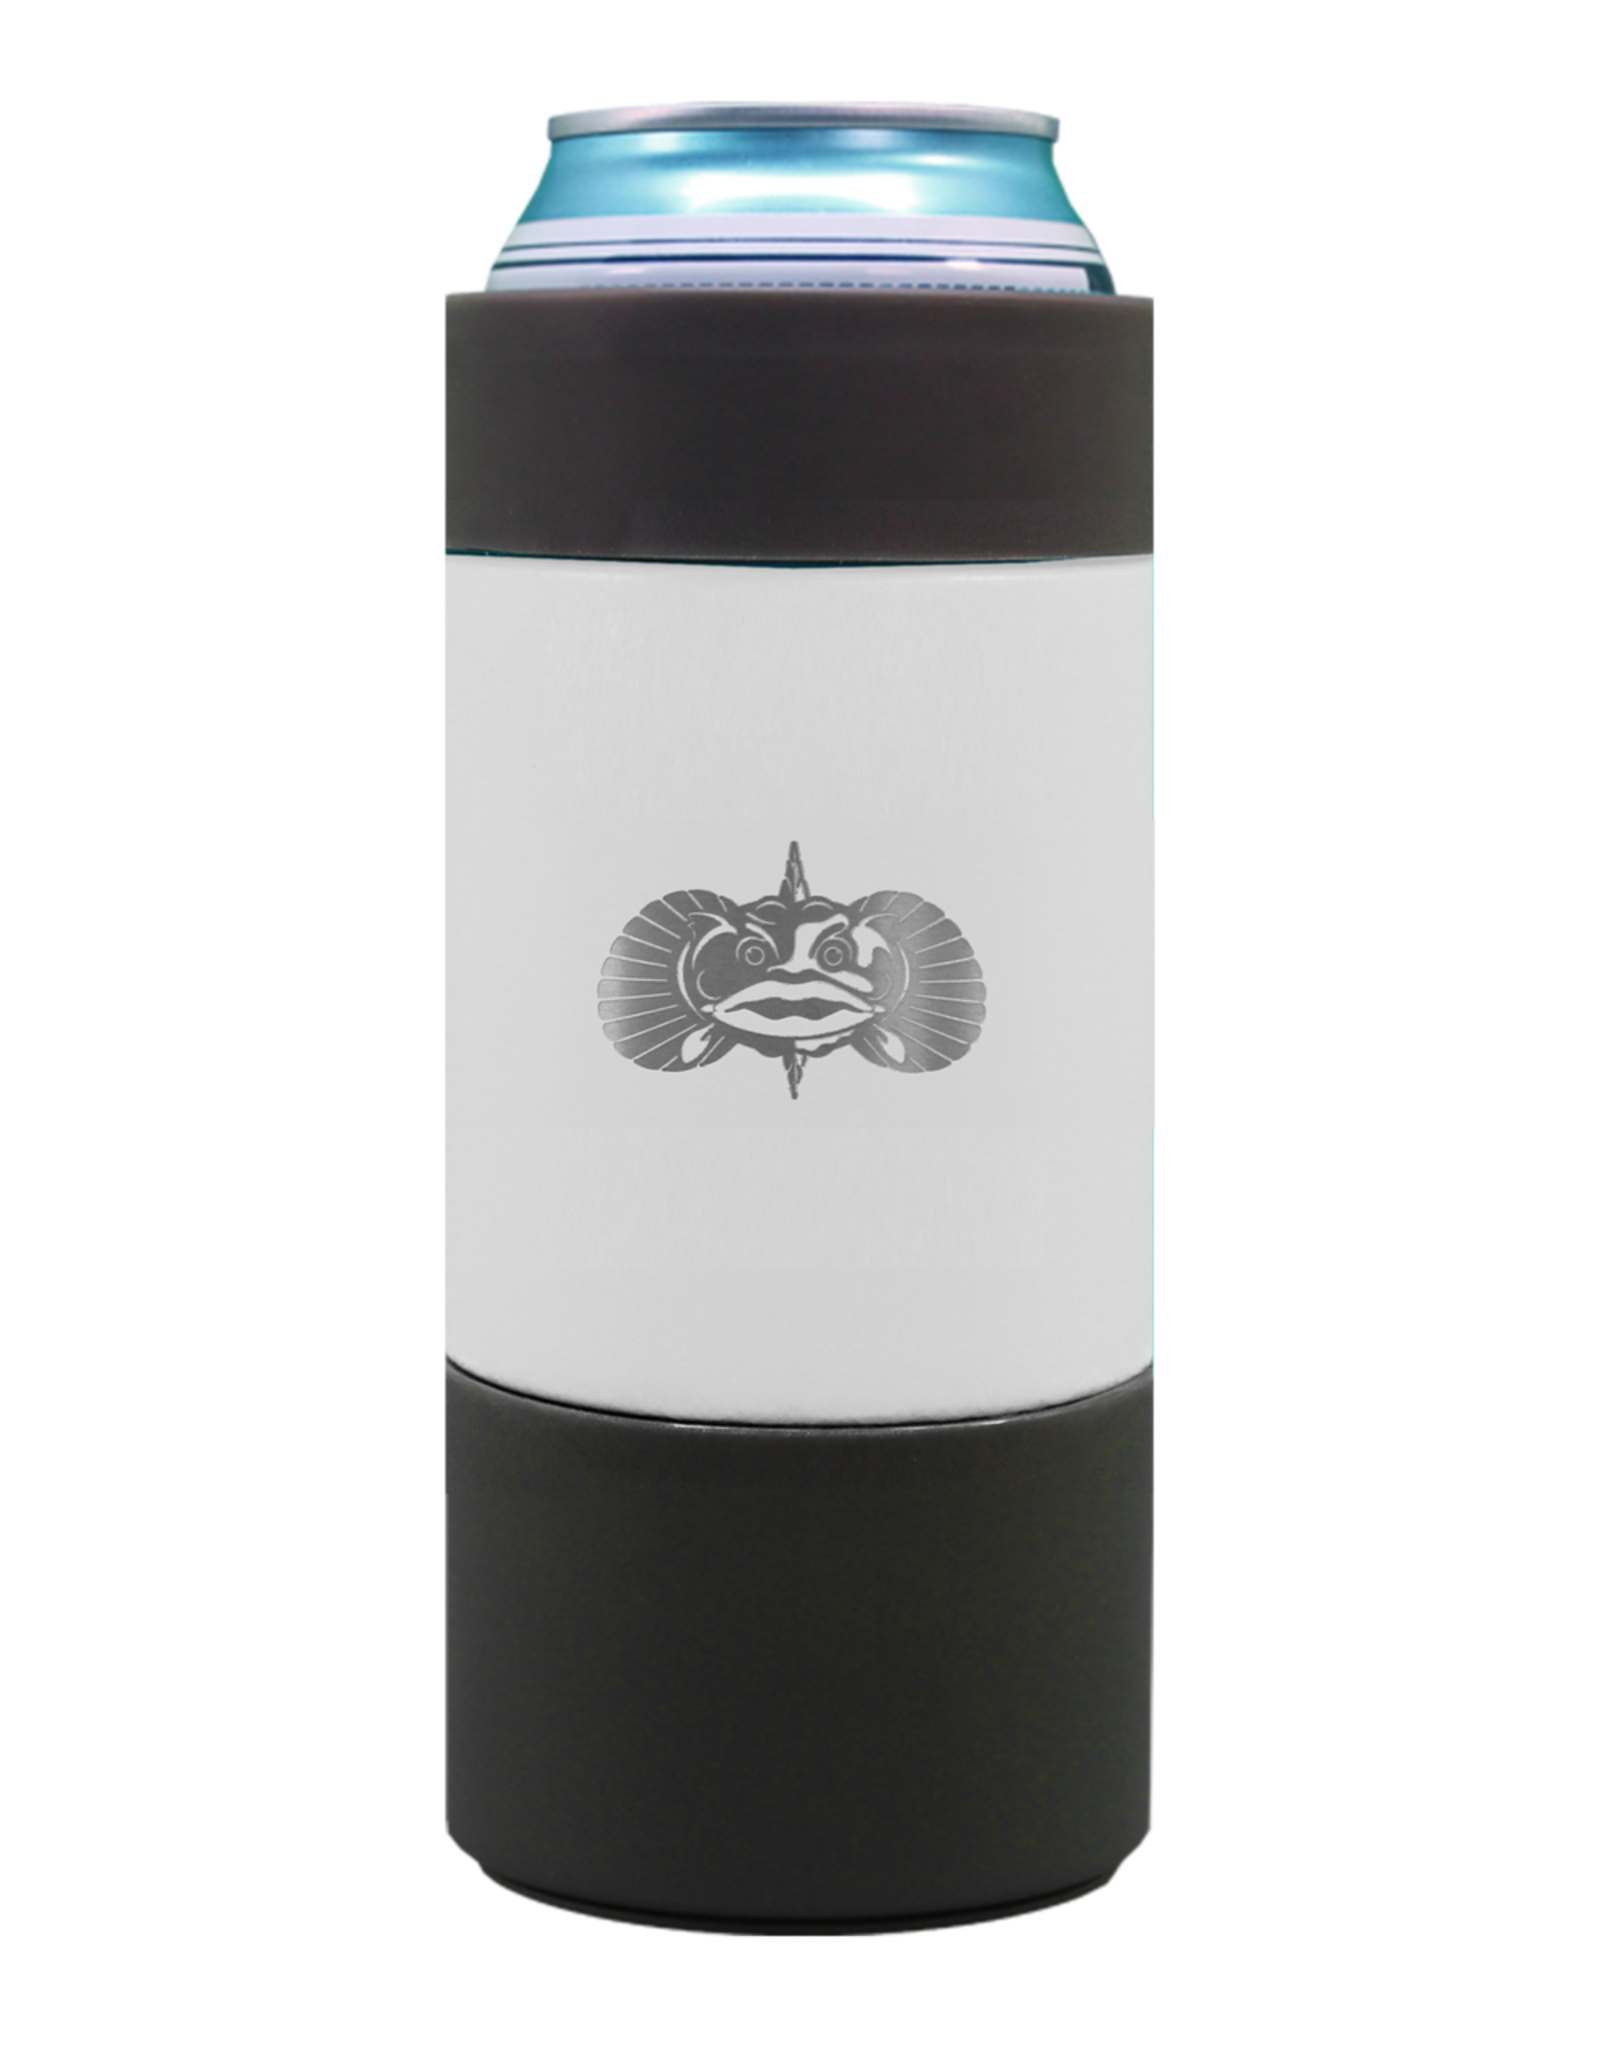 Toadfish Toadfish Non-Tipping 16 oz Can Cooler - White